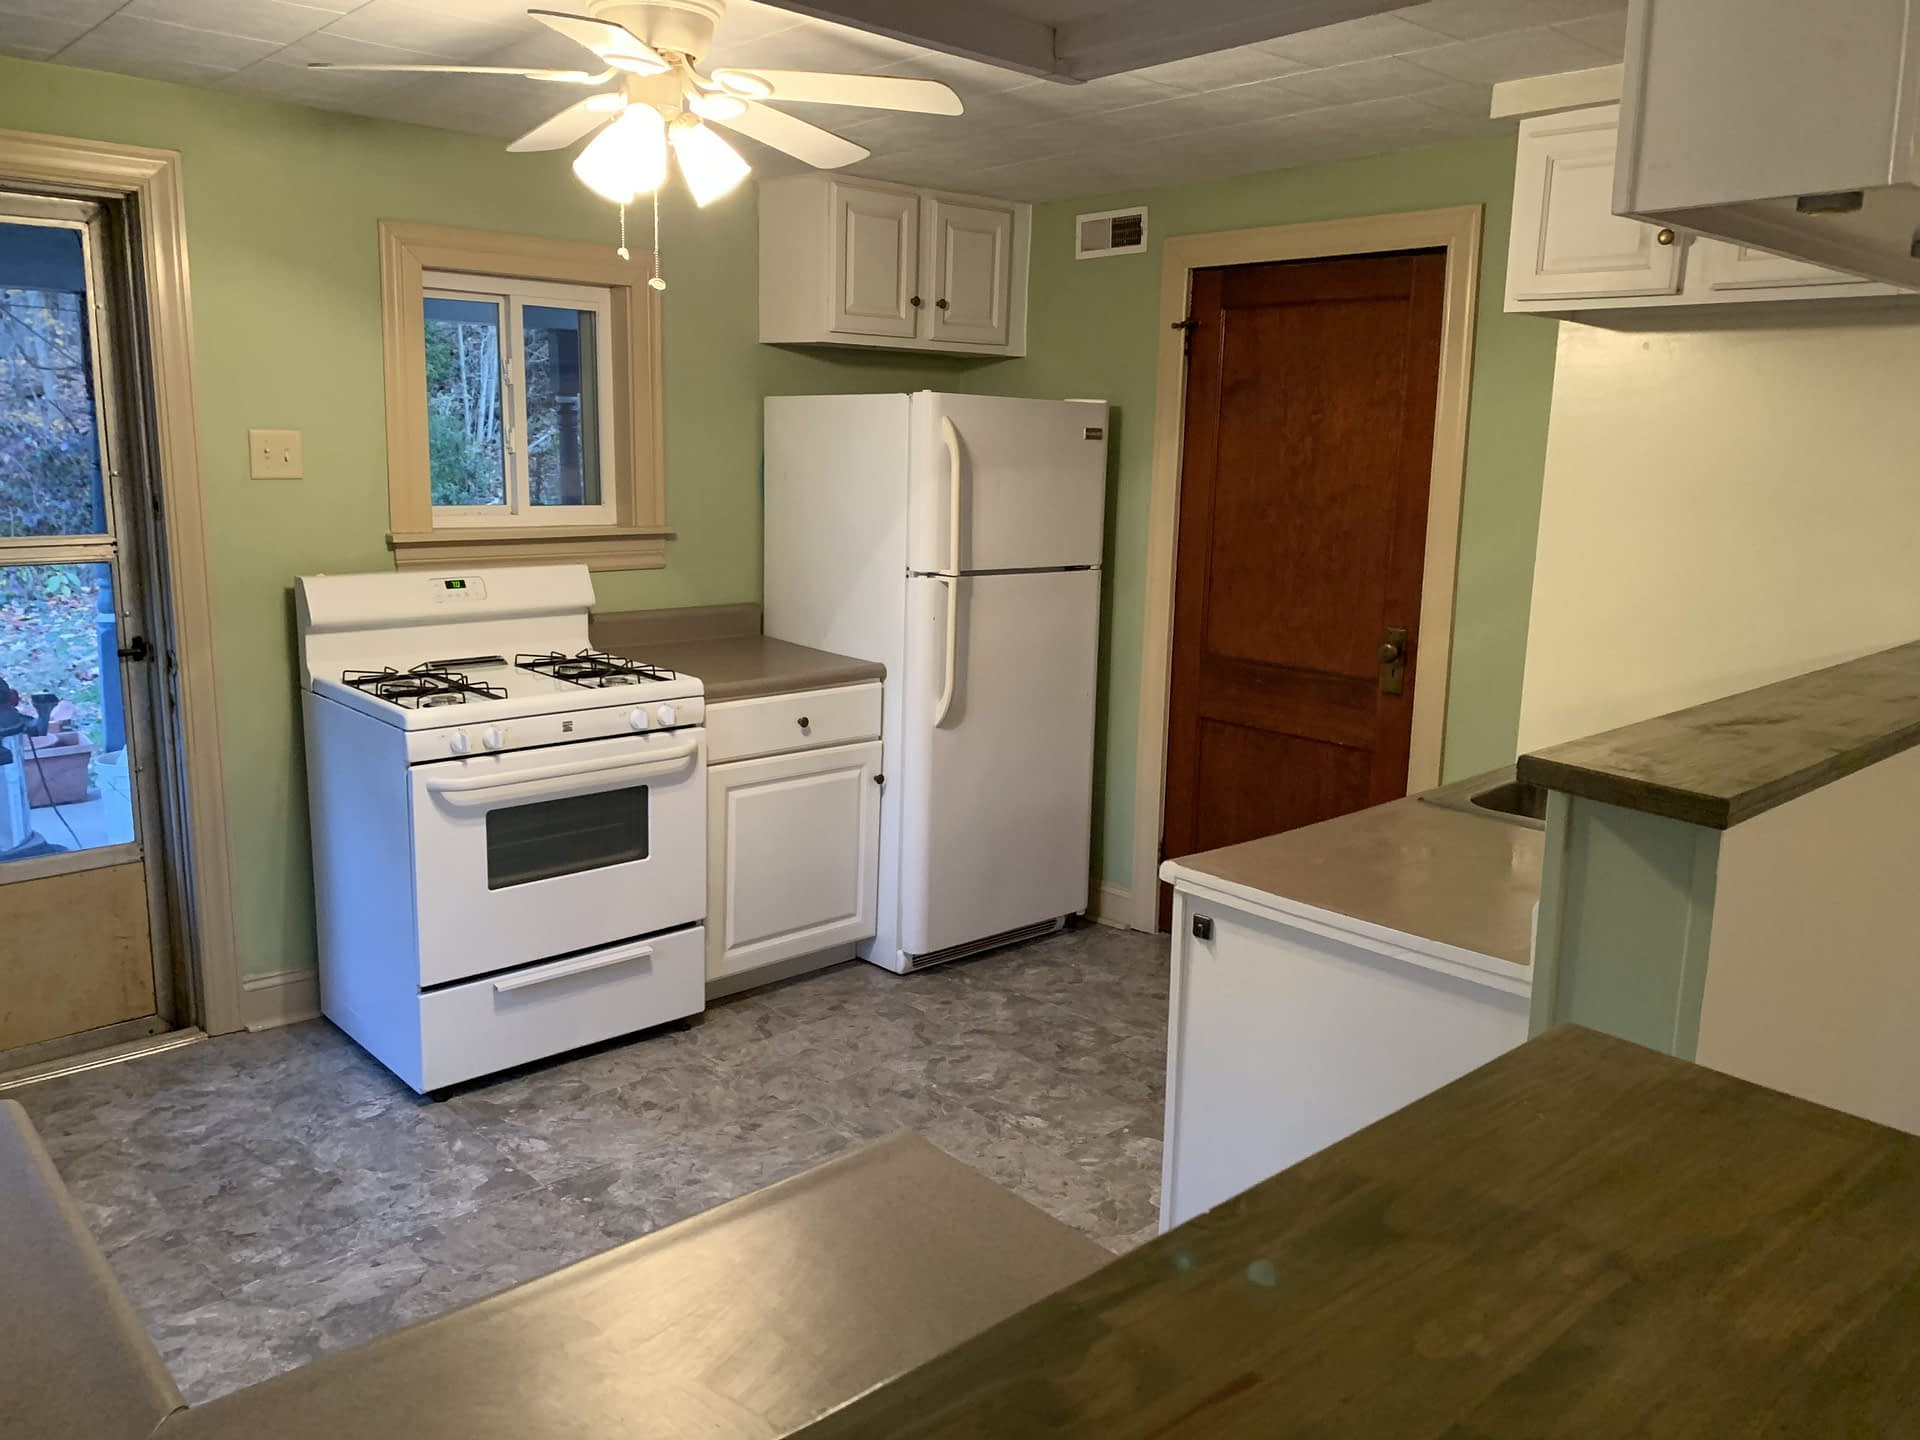 Kitchen view with fridge and stove